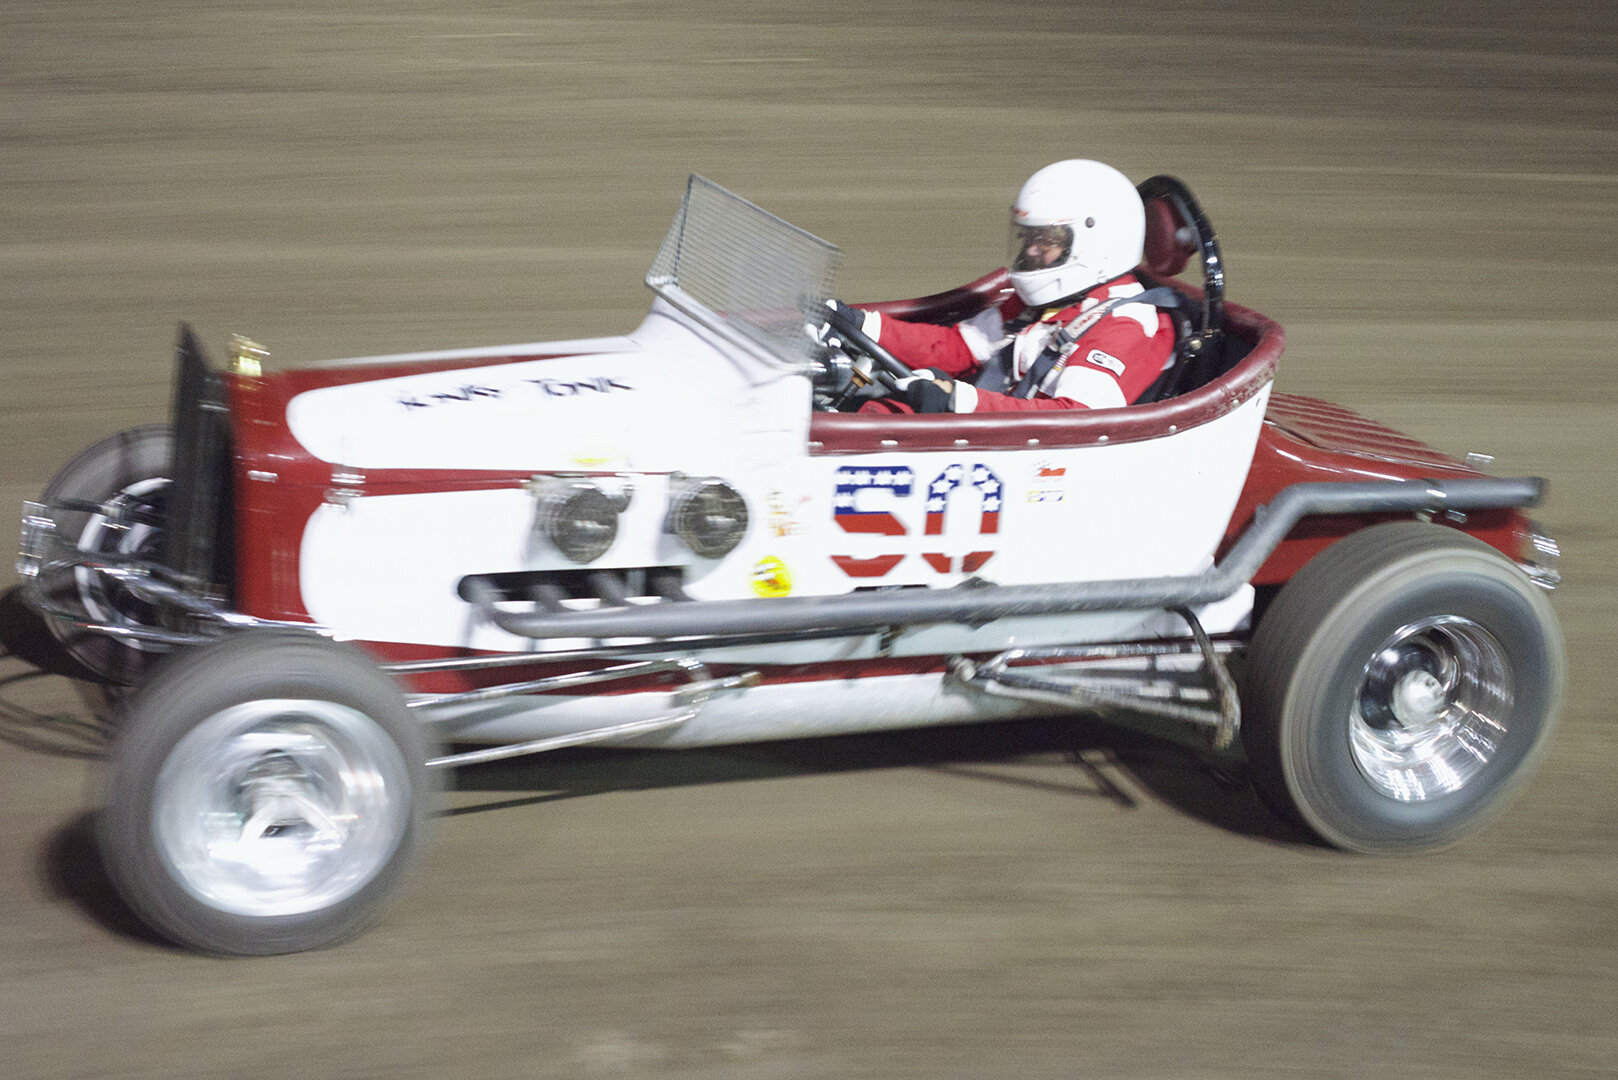 Vintage track roadster in action. These were made from Ford Model T roadsters and were very popular in their day.